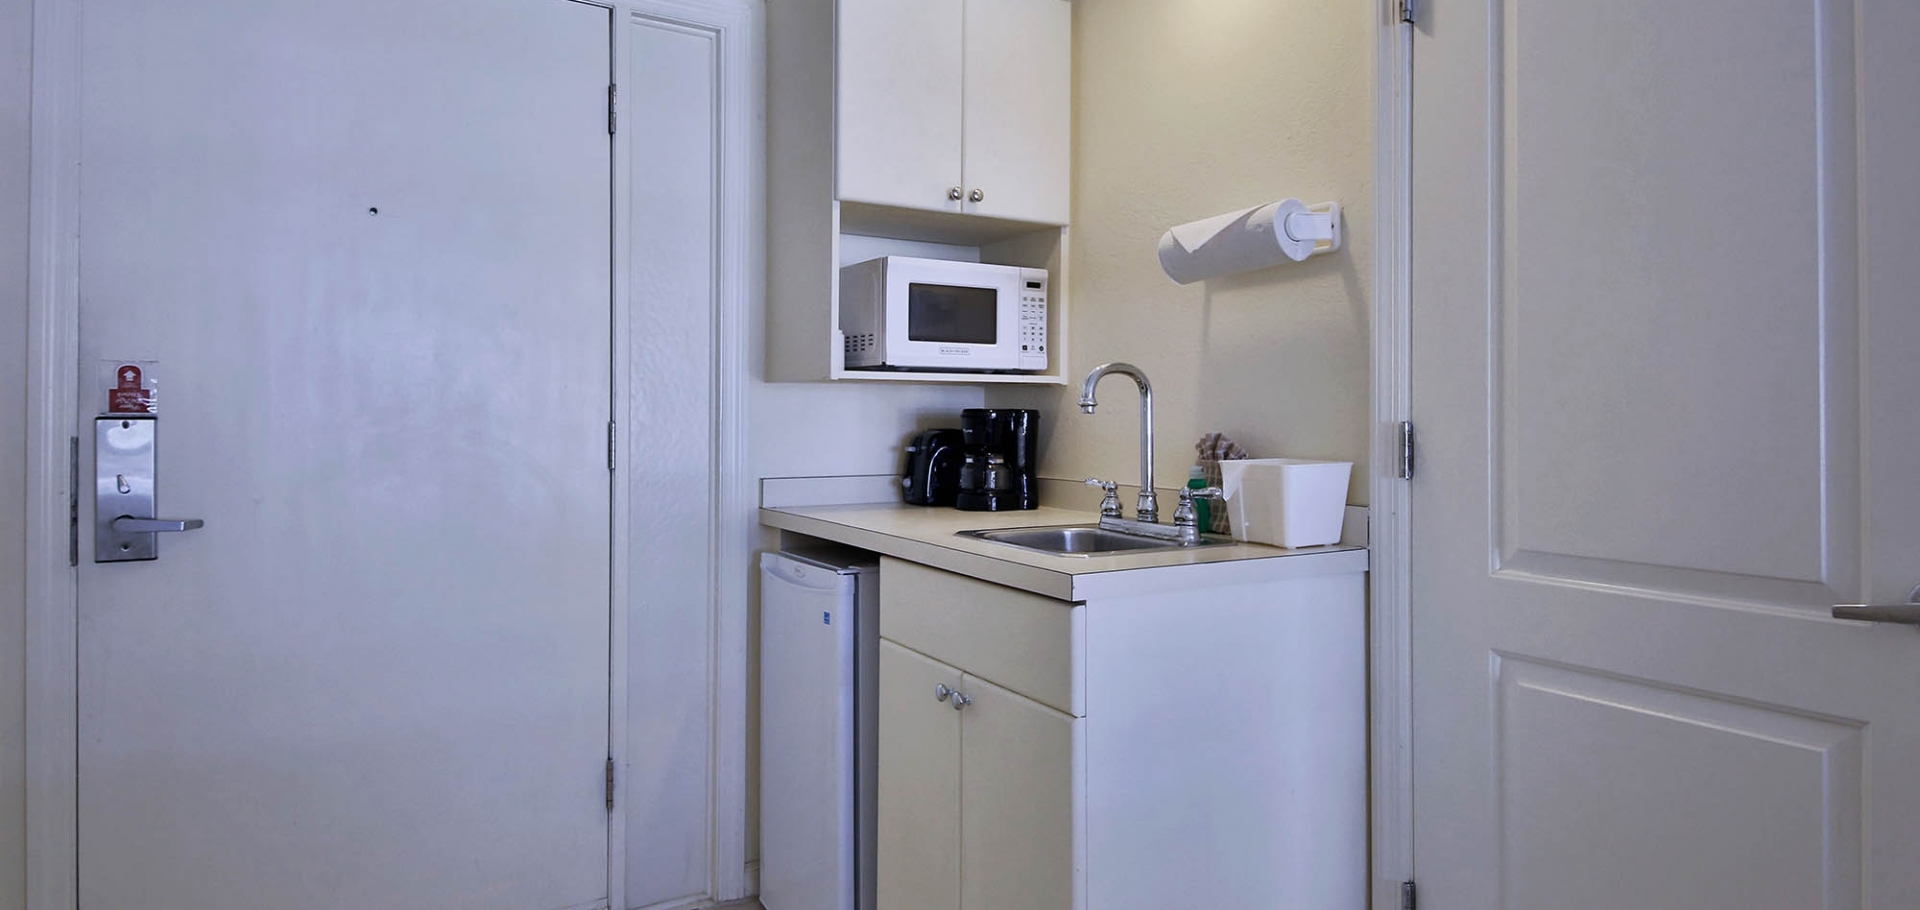 Seaside Inn kitchenette